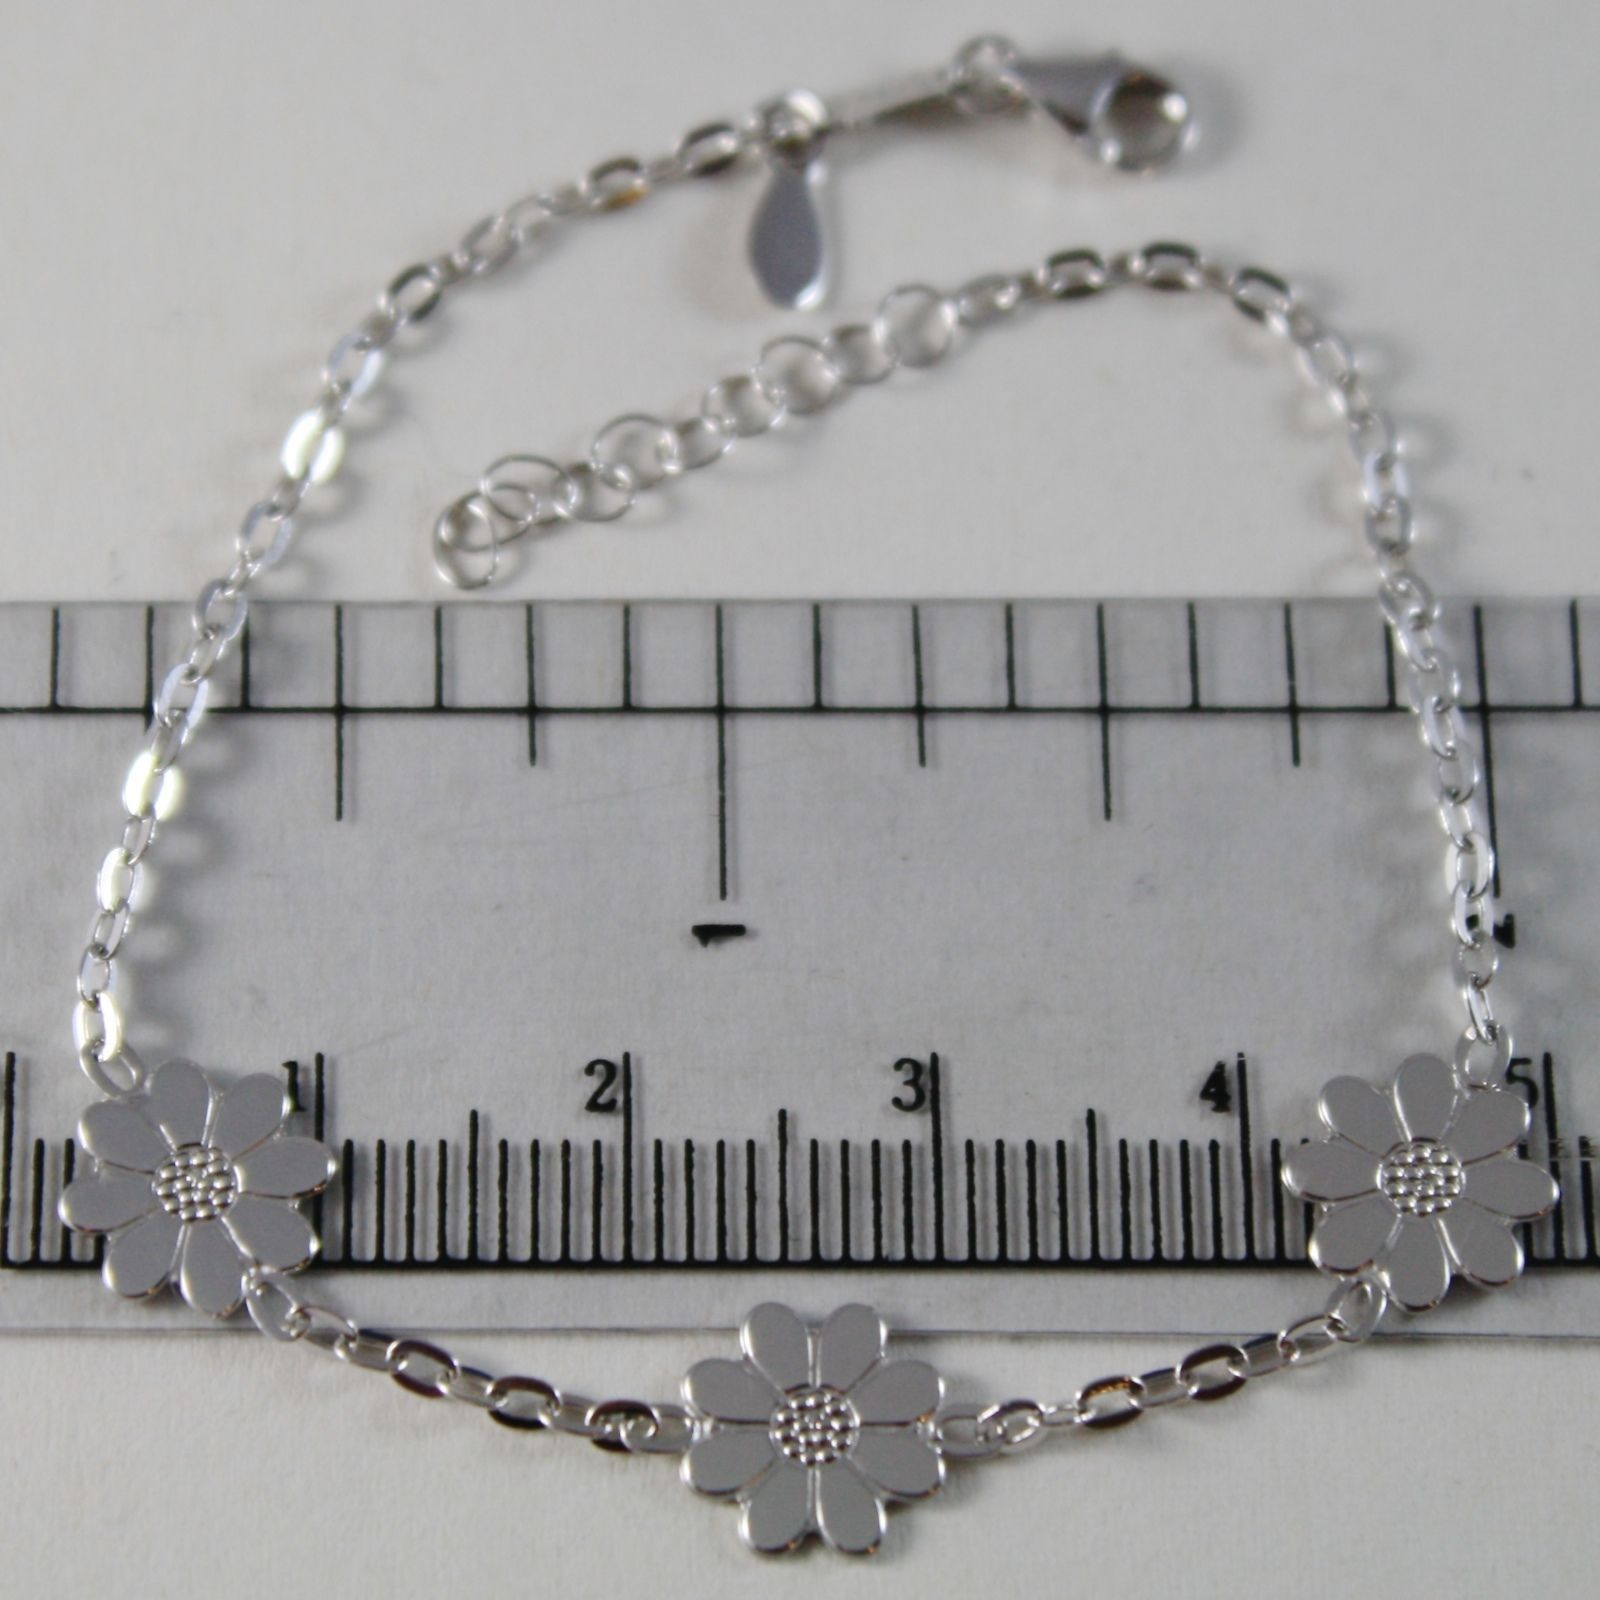 18K WHITE GOLD BRACELET LITTLE DAISY FLOWER 9 MM, 7.10 INCHES MADE IN ITALY